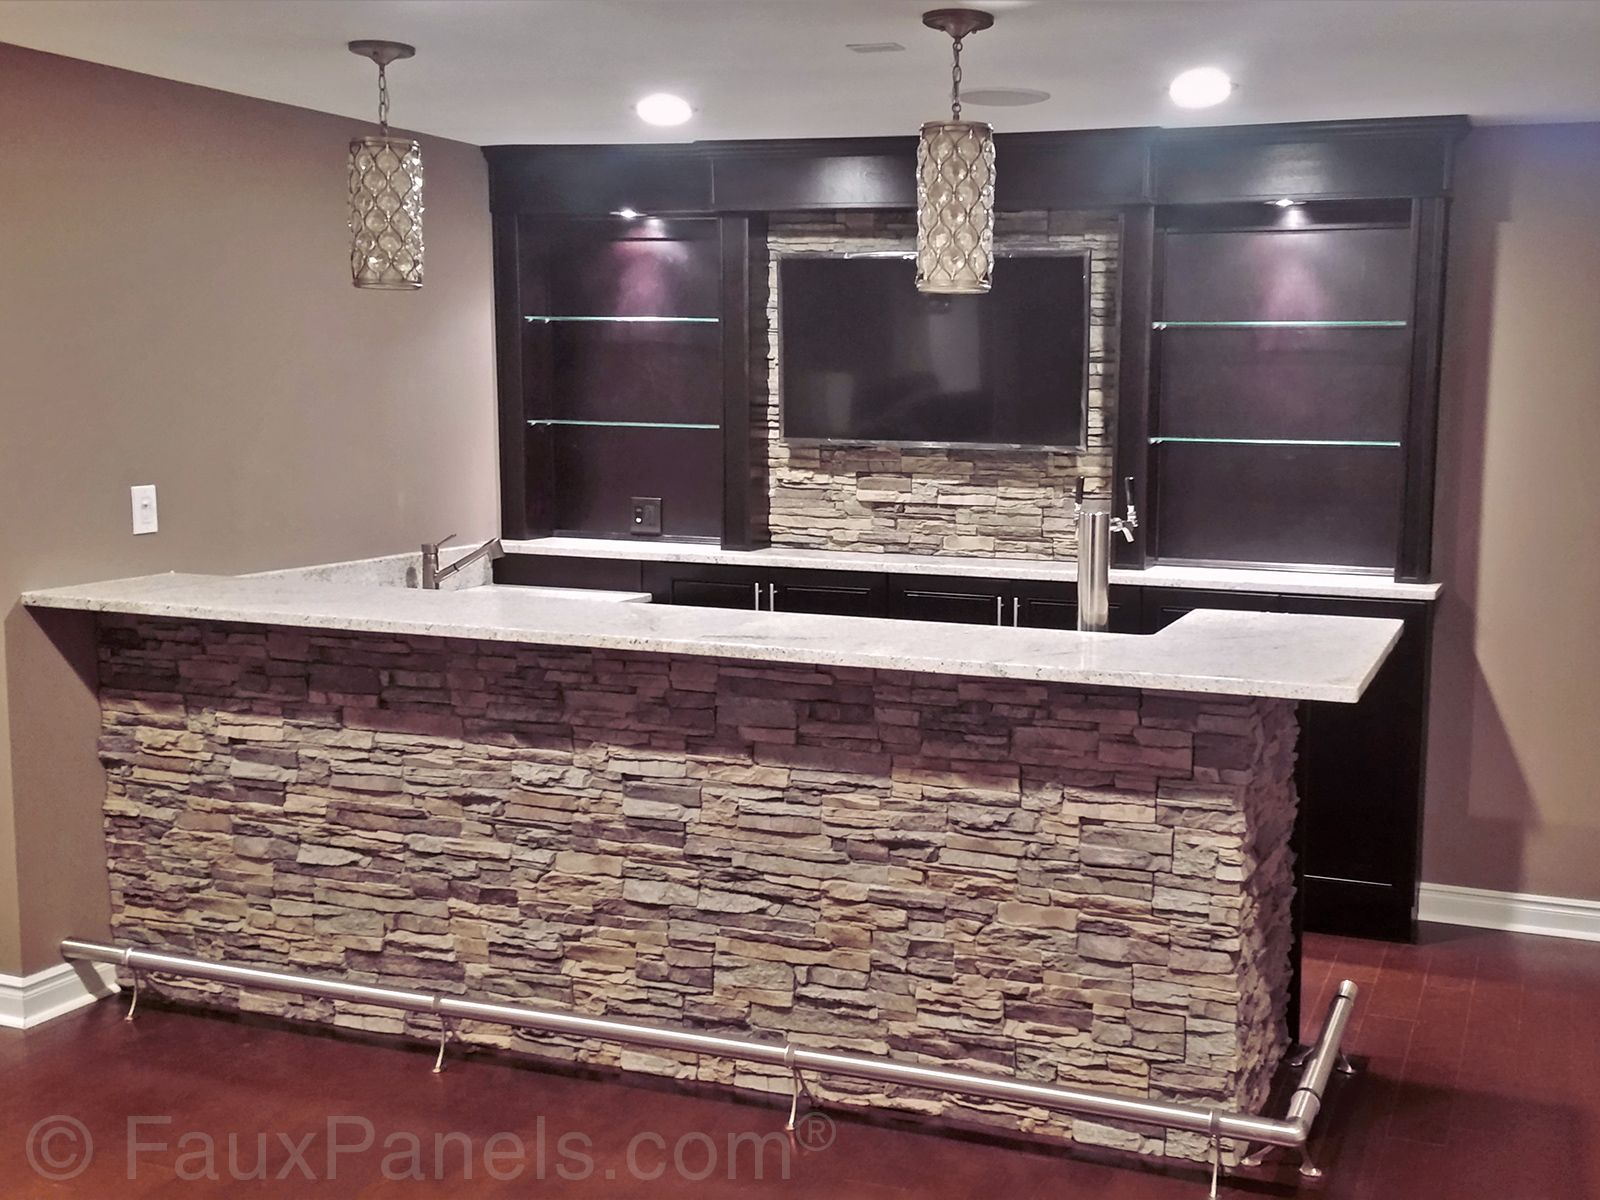 Lshaped Basement Bars  Shaped Home Bar Plans  Basement Bars  Pinterest   Bar Plans, Basements And Bar